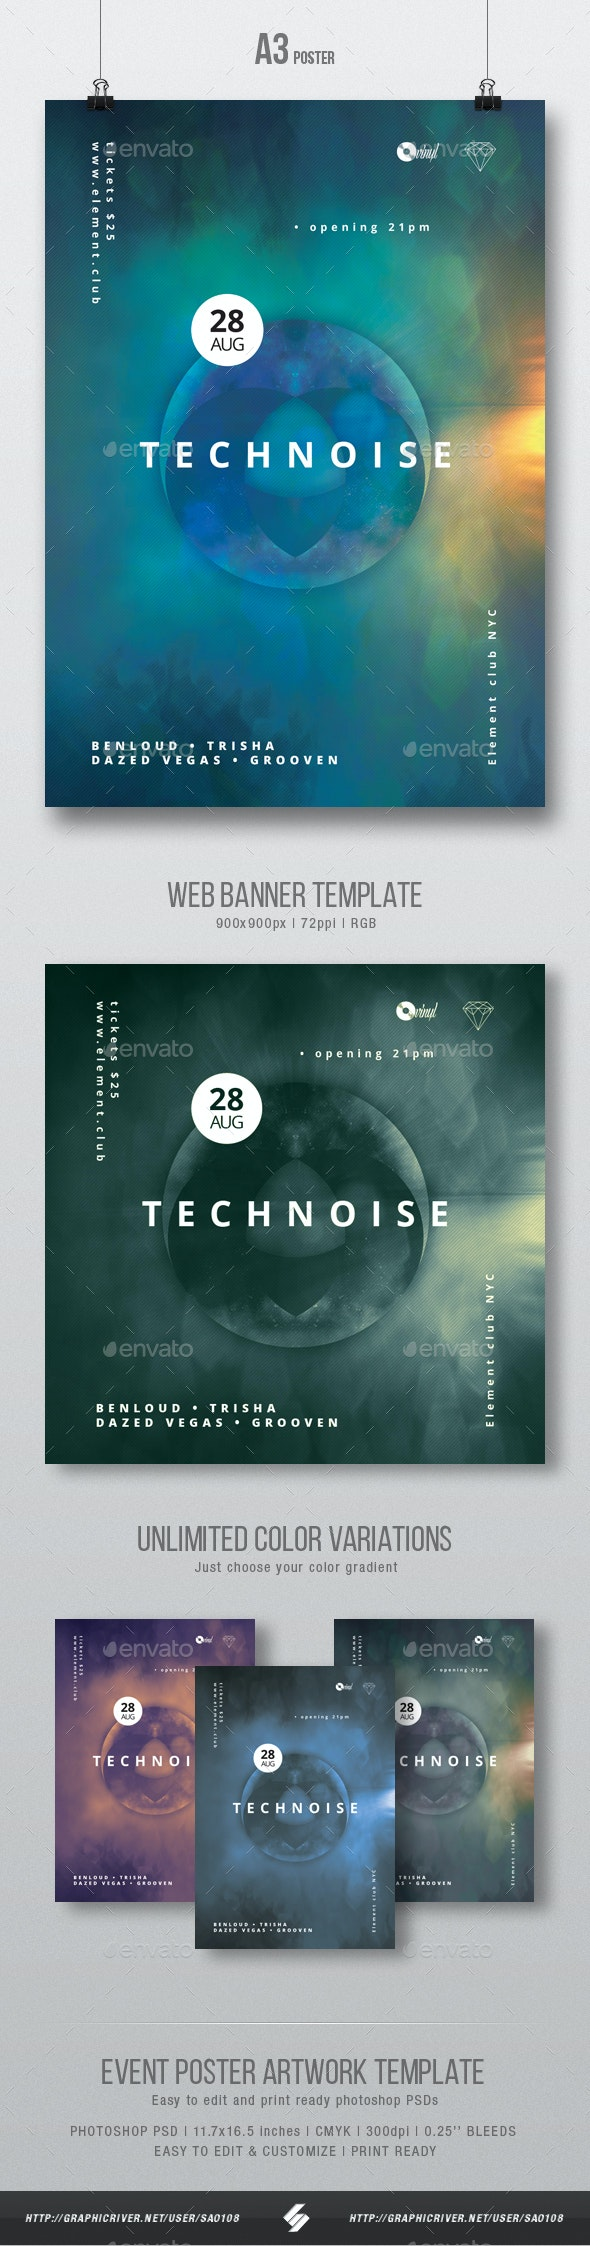 Technoise vol.2 - Minimal Party Flyer / Poster Artwork Template A3 - Clubs & Parties Events